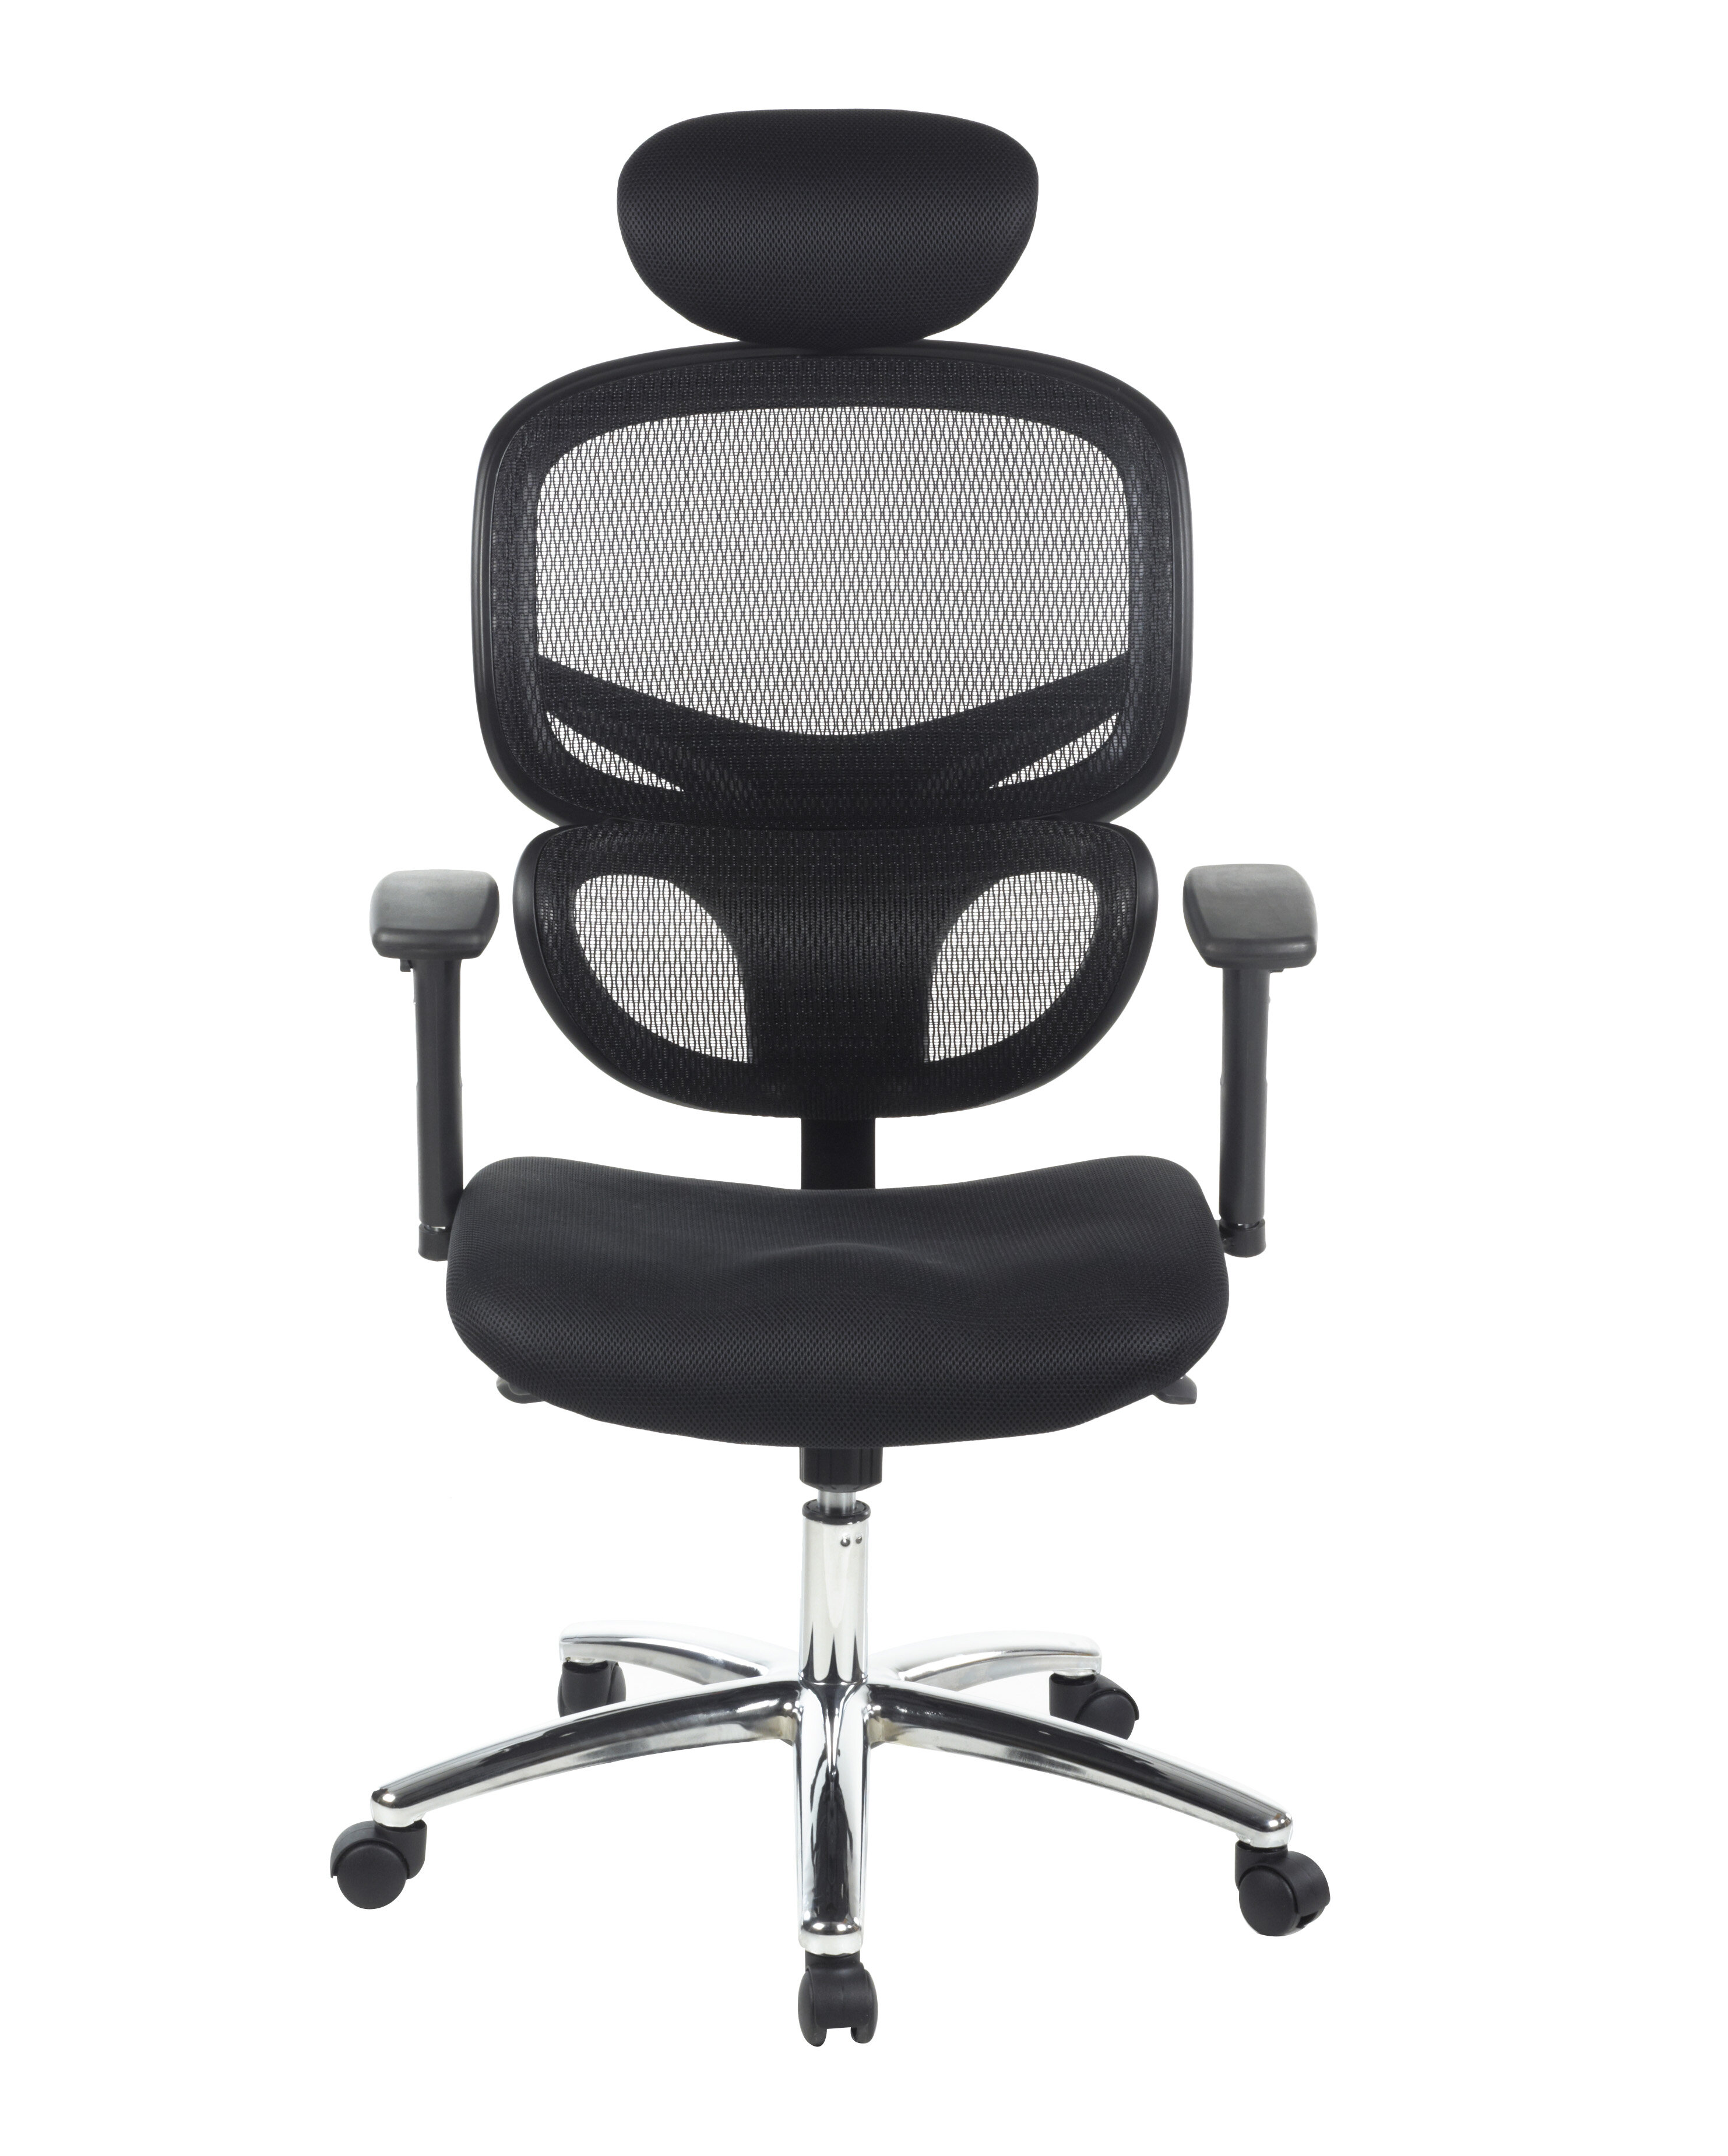 stirring camping cushion support good withod best computer back for armchair fresh with chair lumbar gaming picture fice office